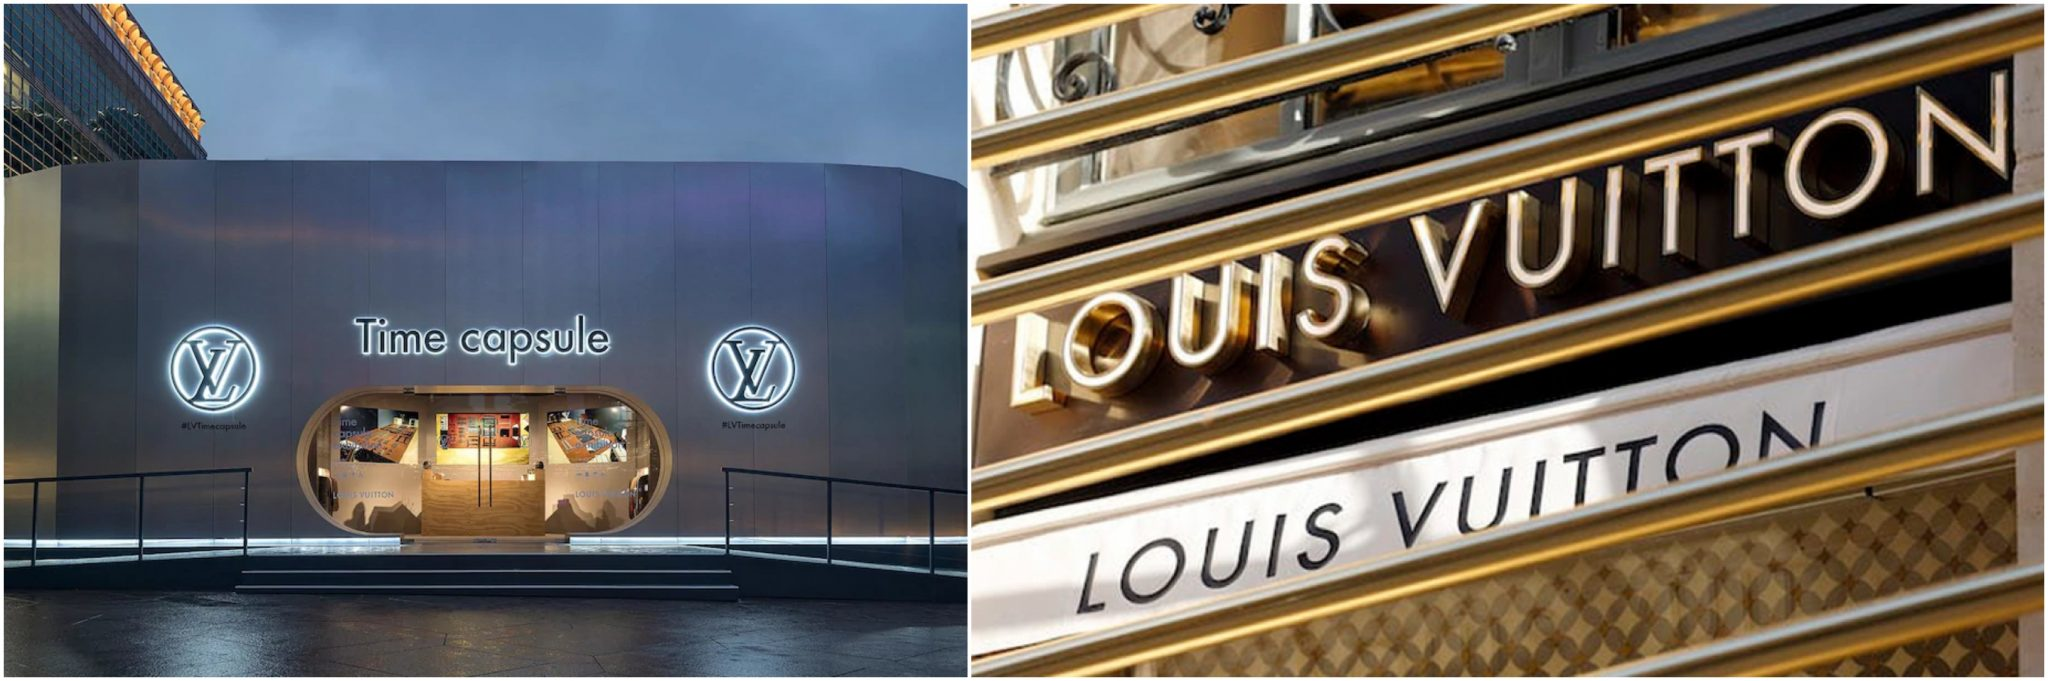 8c9d6963f3c You Need To Check Out Louis Vuitton's Free Time Capsule Exhibition